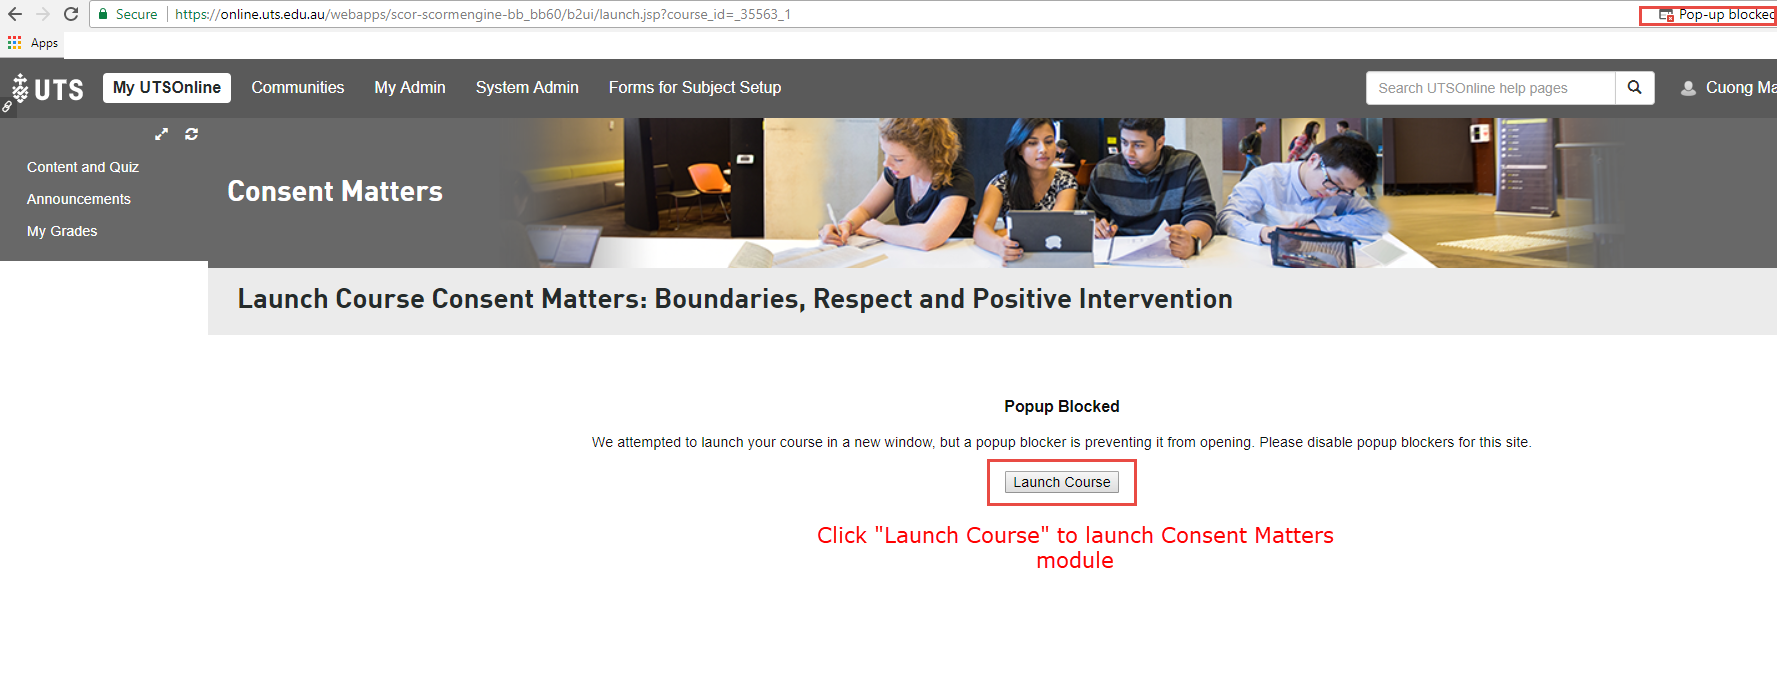 If you have a pop-up blocker you will be asked to launch the course